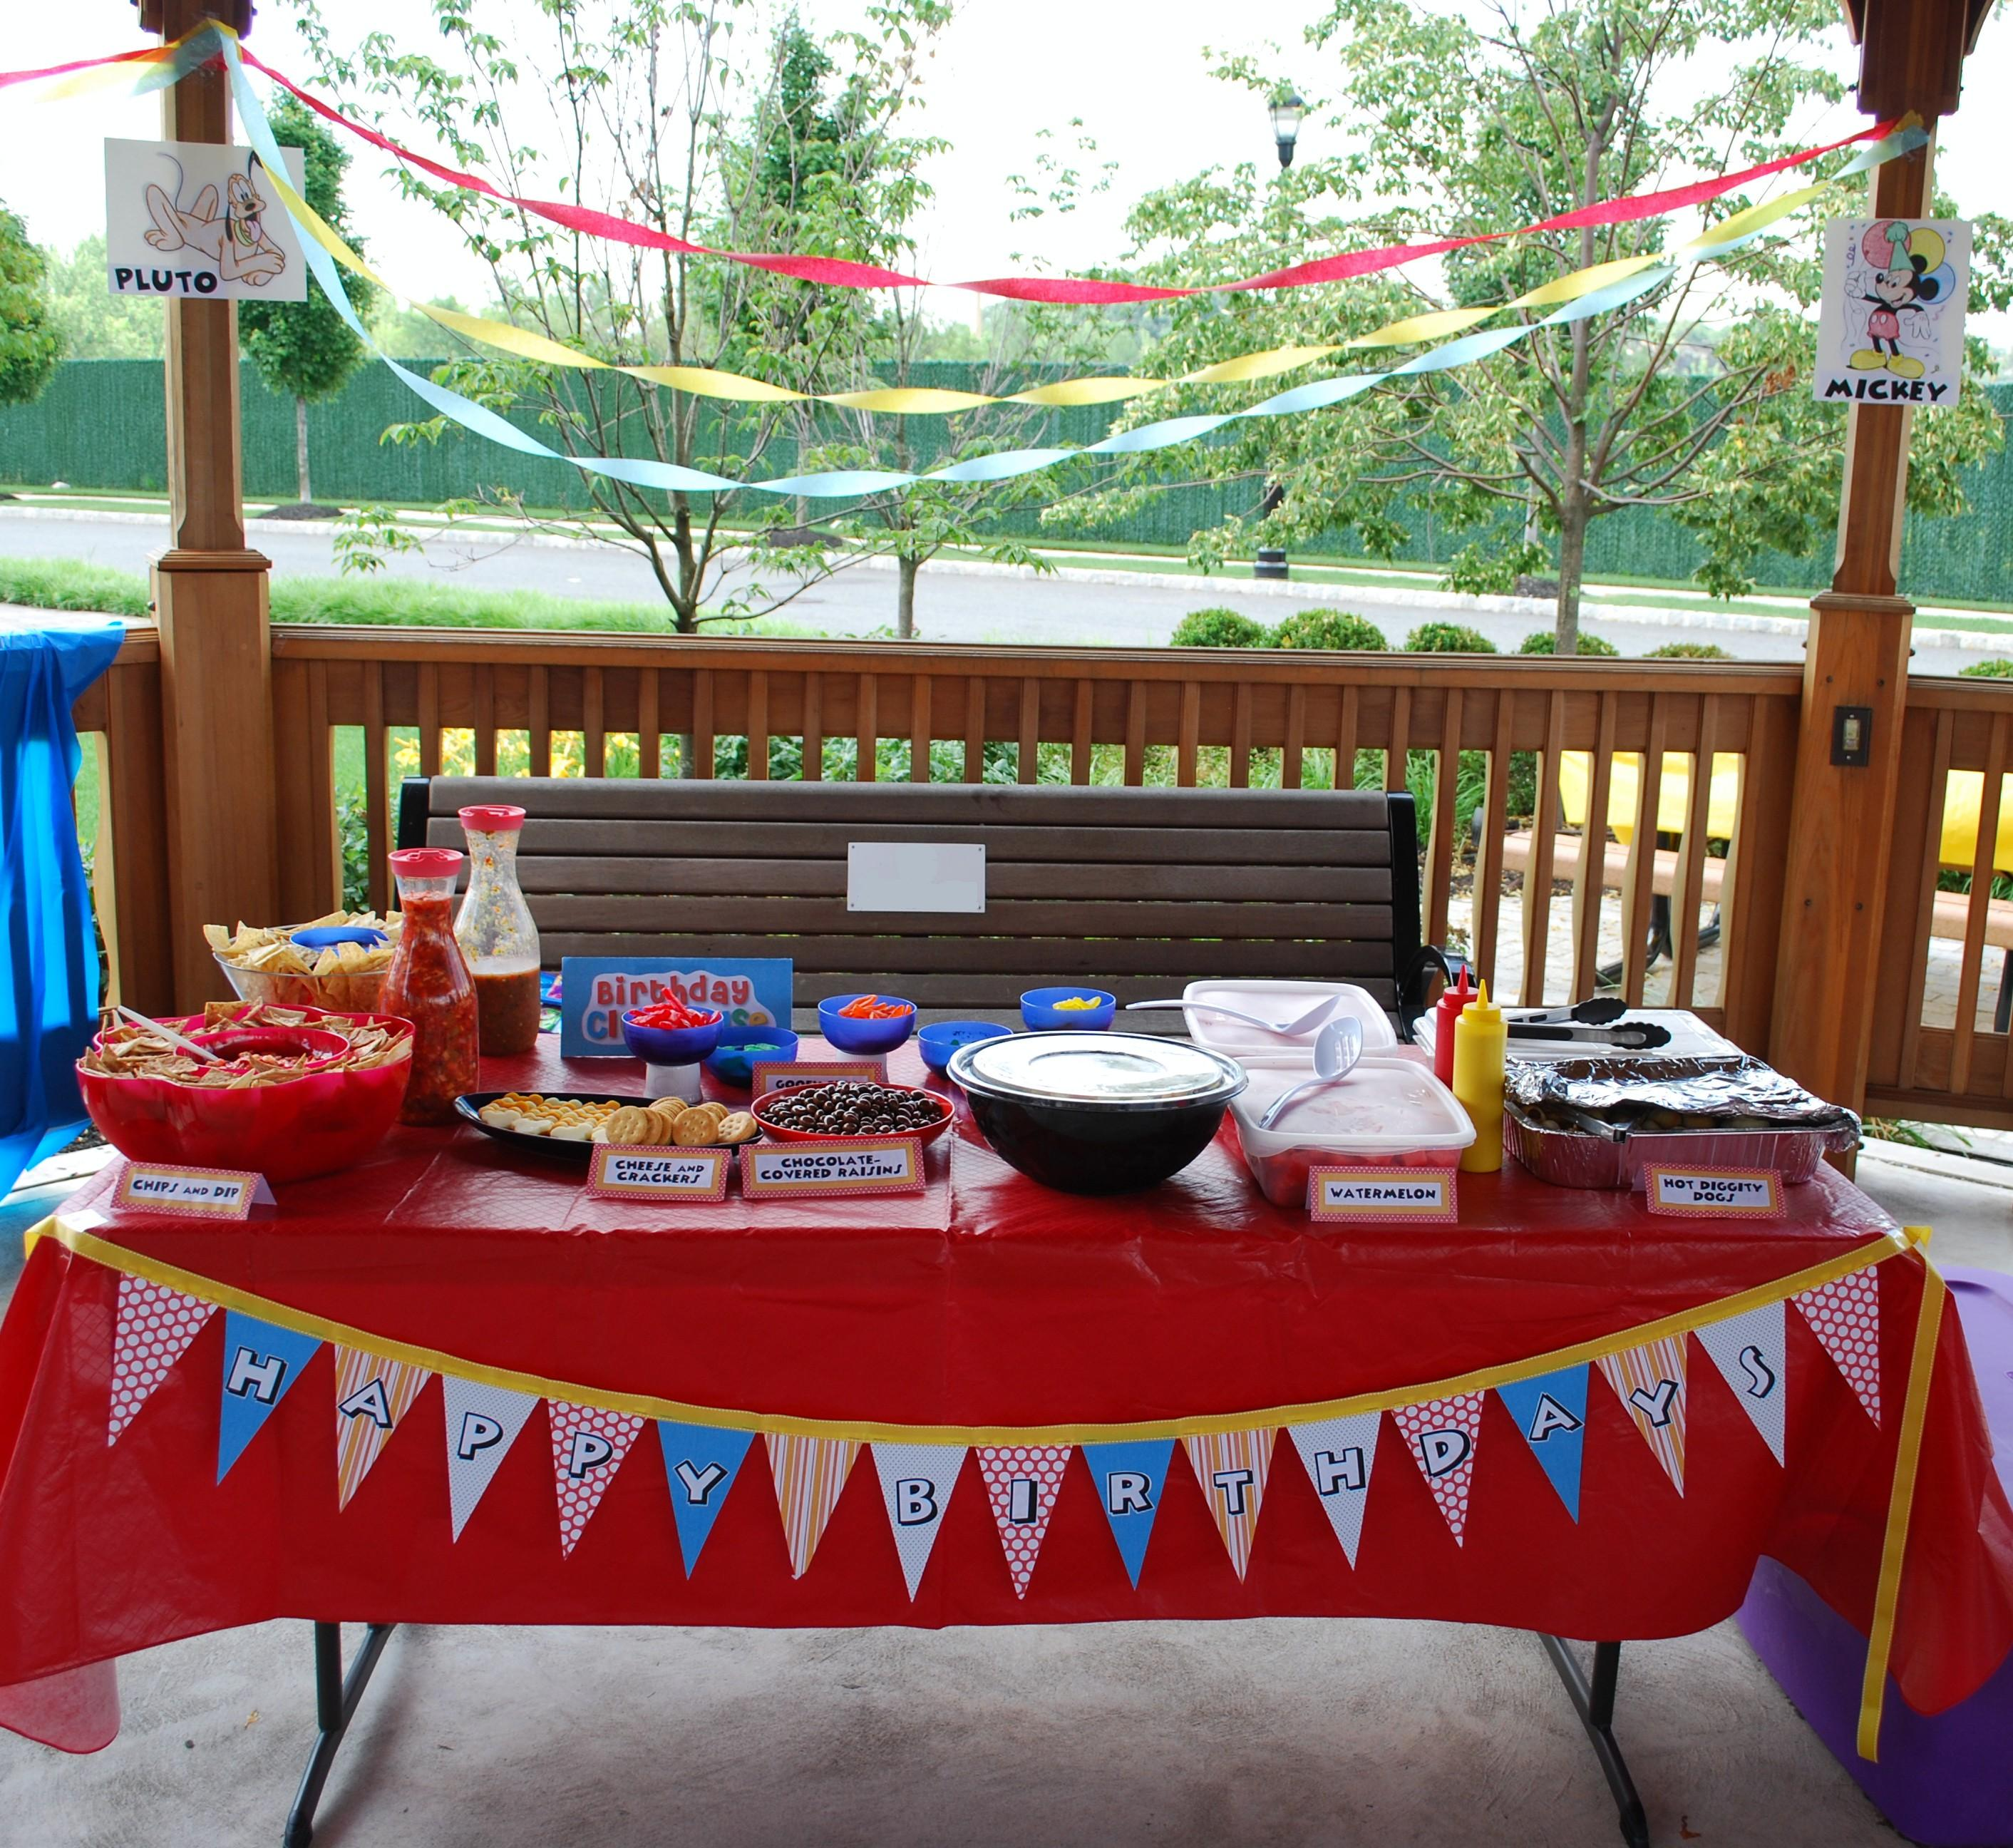 How to make a licensed character party look homemade for Party decorations you can make at home